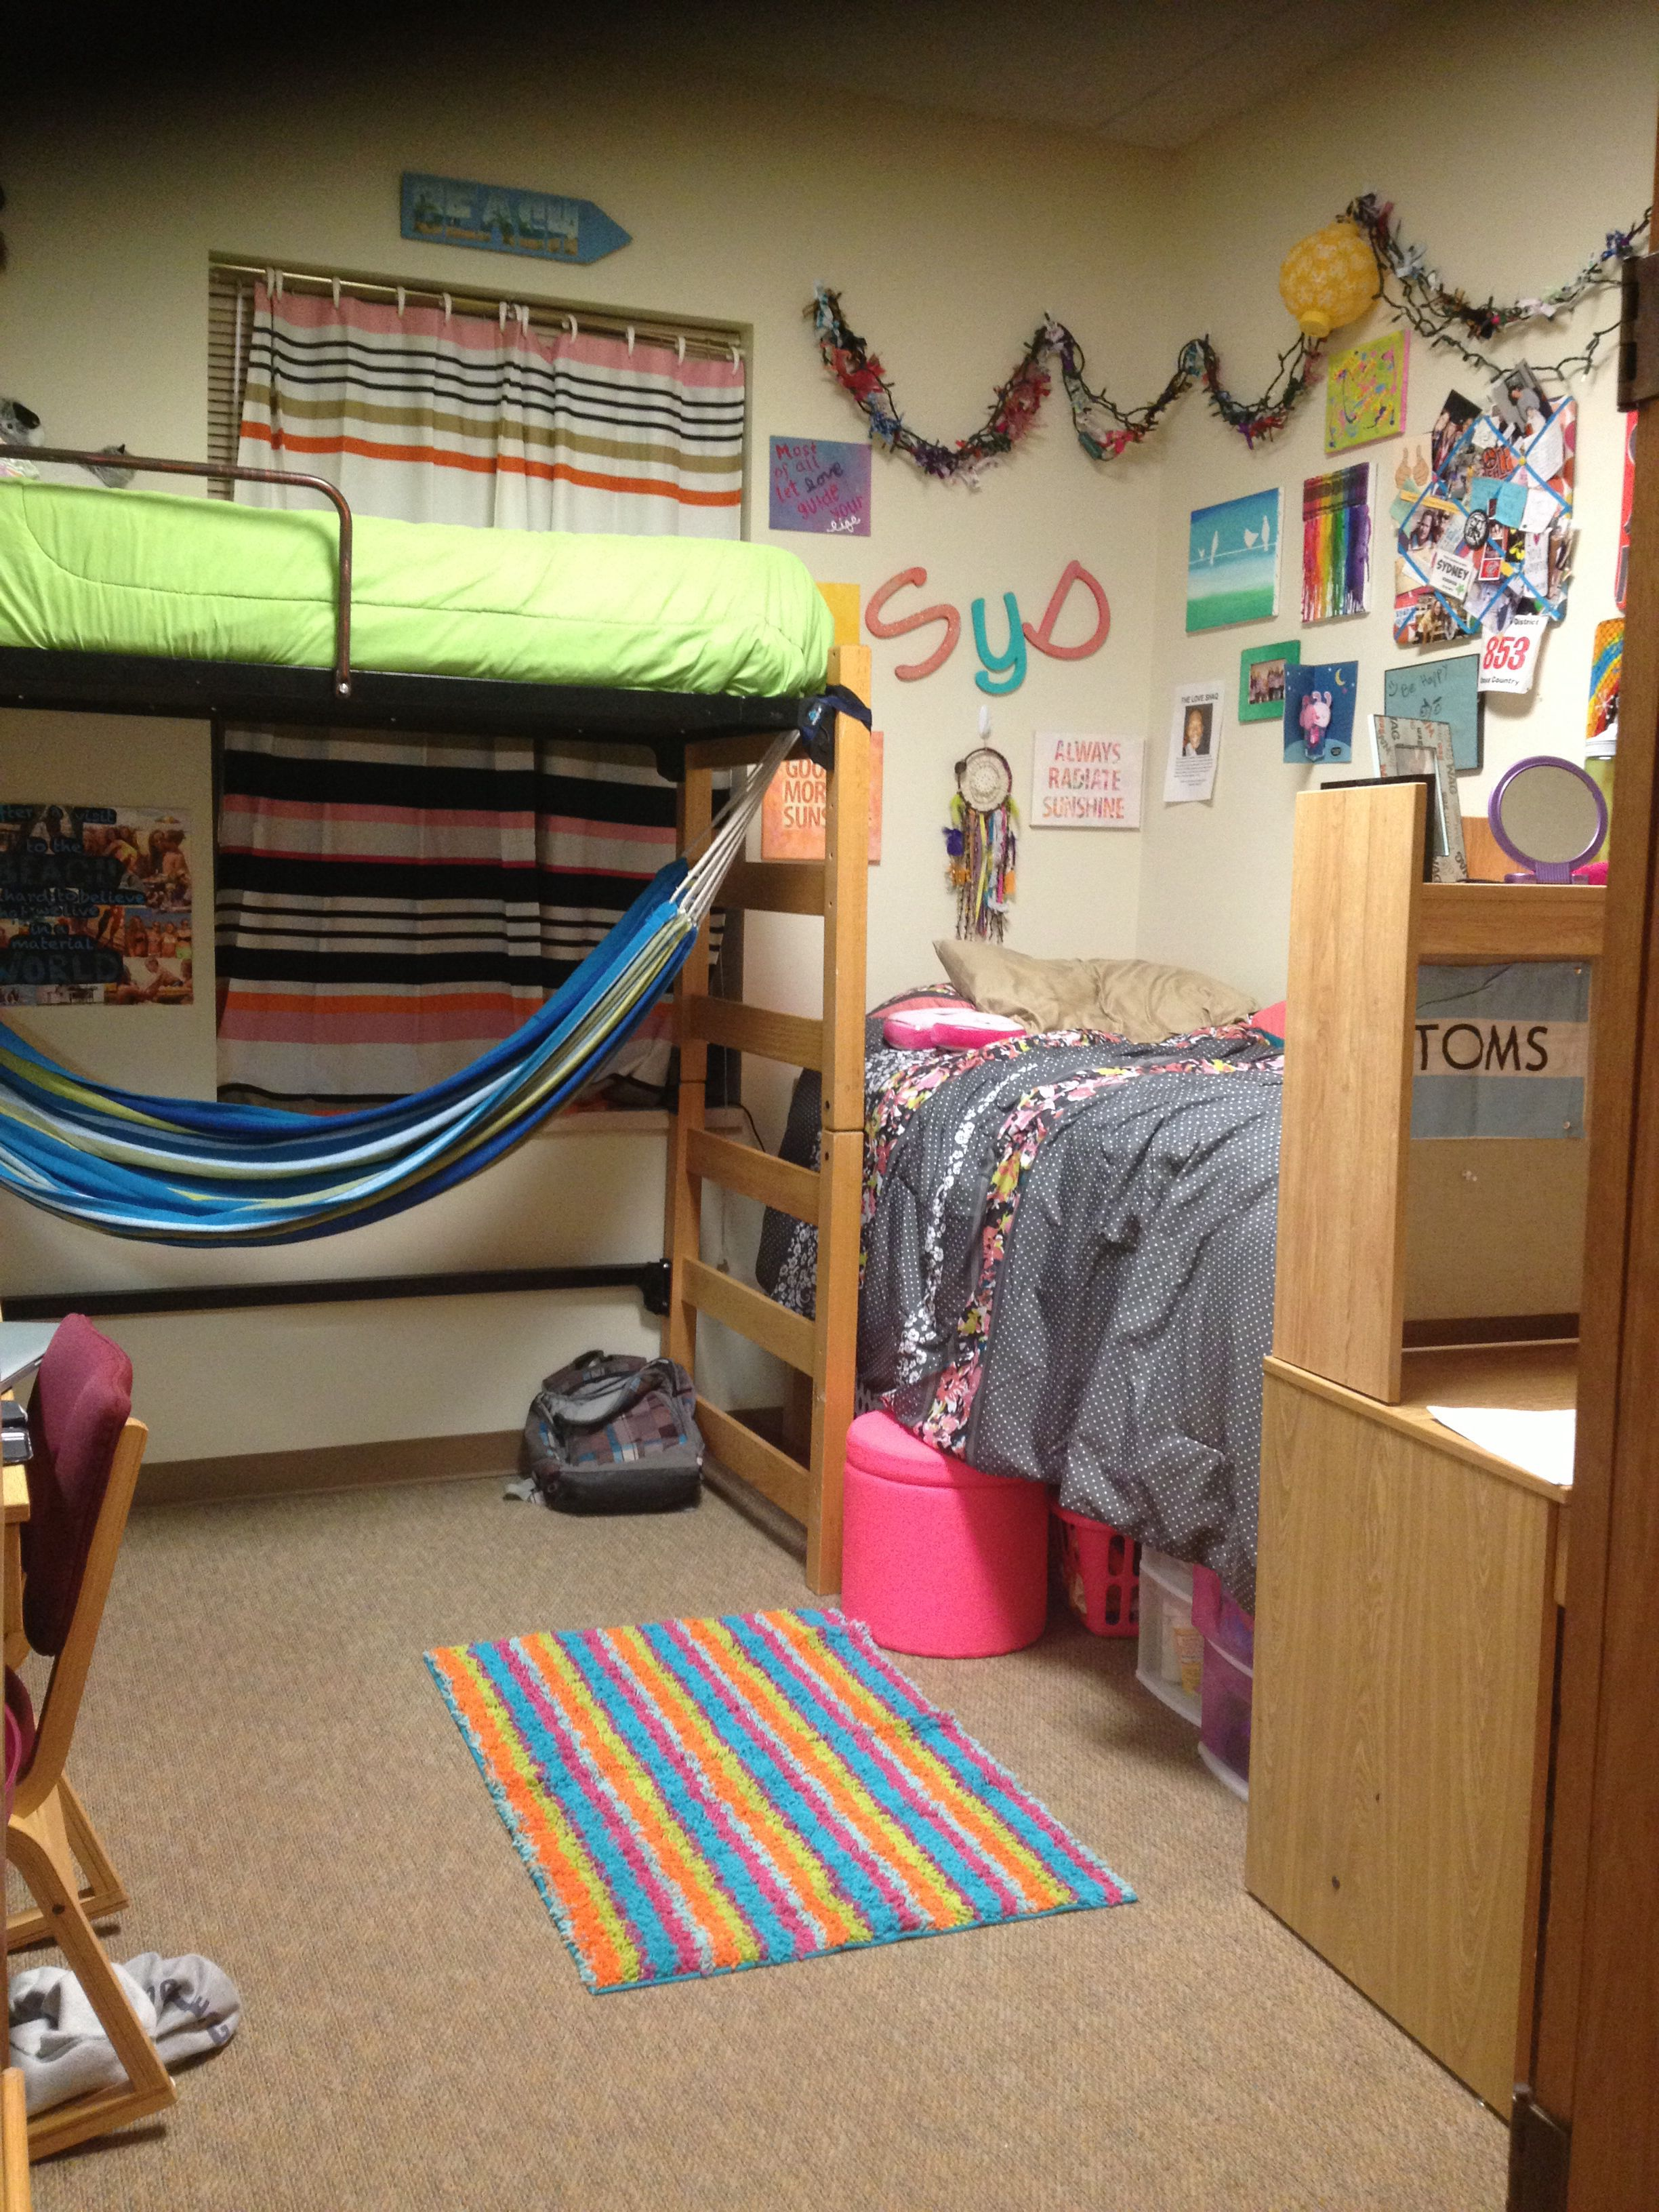 Hammock Under The Bed Dorm Room Setup Layouts Cool Rooms